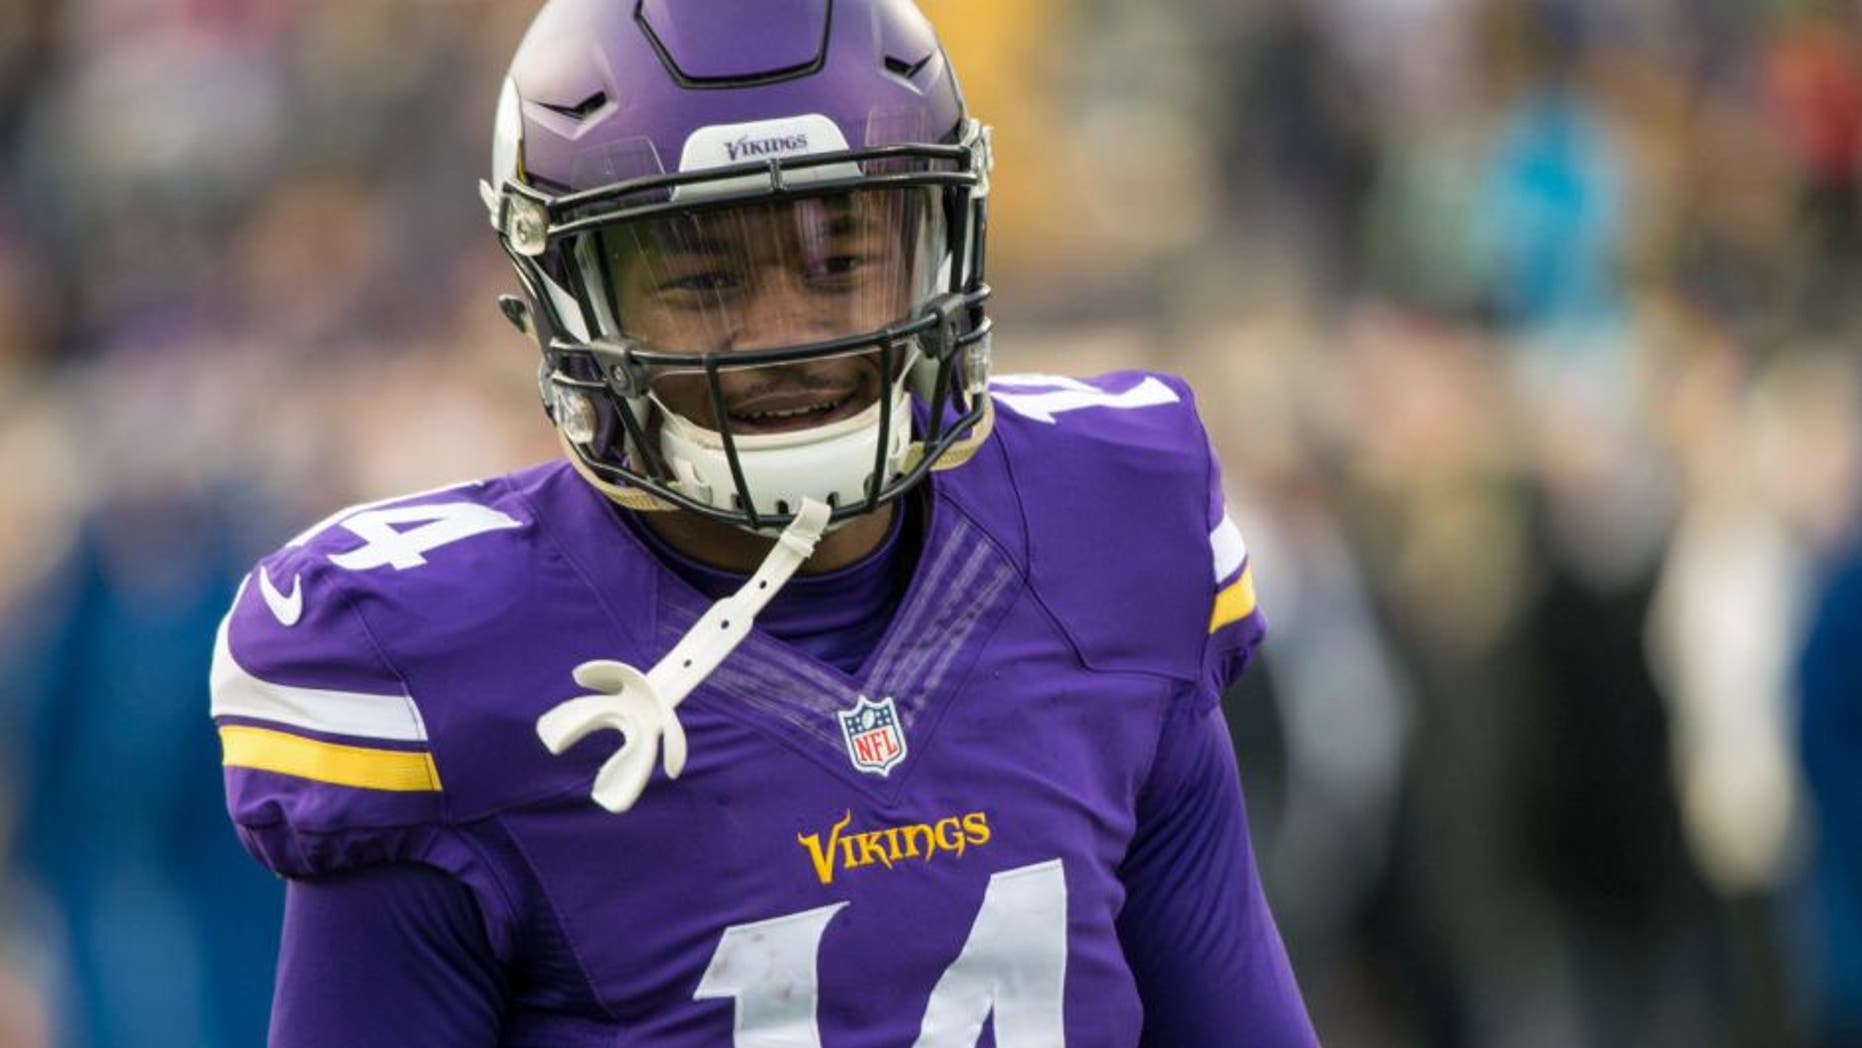 Nov 22, 2015; Minneapolis, MN, USA; Minnesota Vikings wide receiver Stefon Diggs (14) against the Green Bay Packers at TCF Bank Stadium. The Packers defeated the Vikings 30-15. Mandatory Credit: Brace Hemmelgarn-USA TODAY Sports